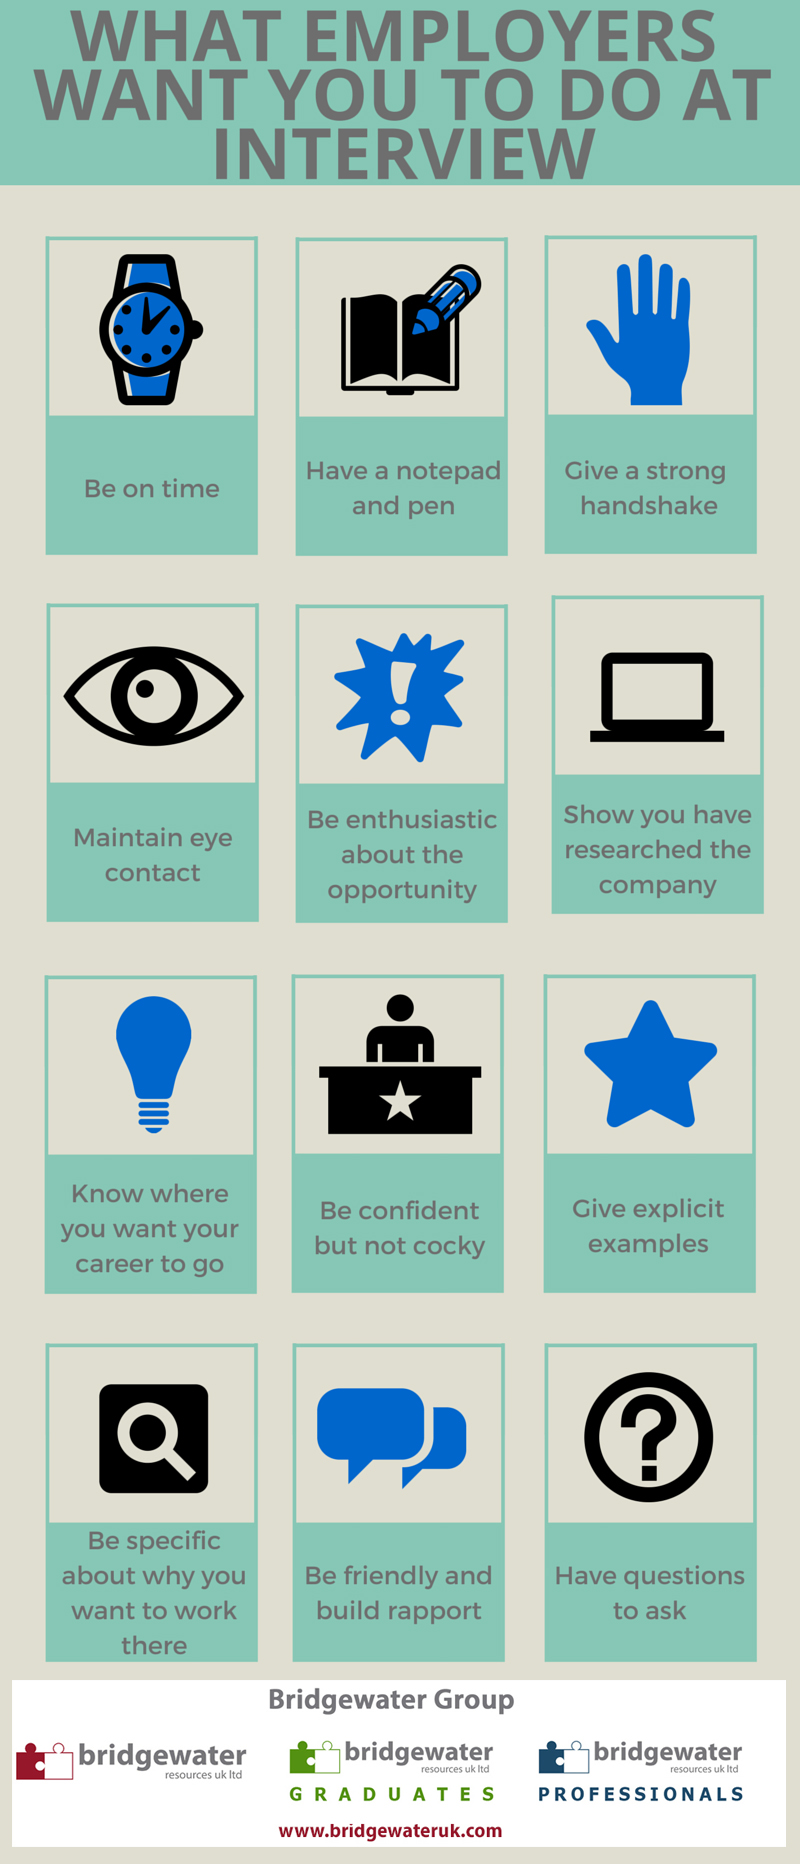 What employers want you to do at interview infographic